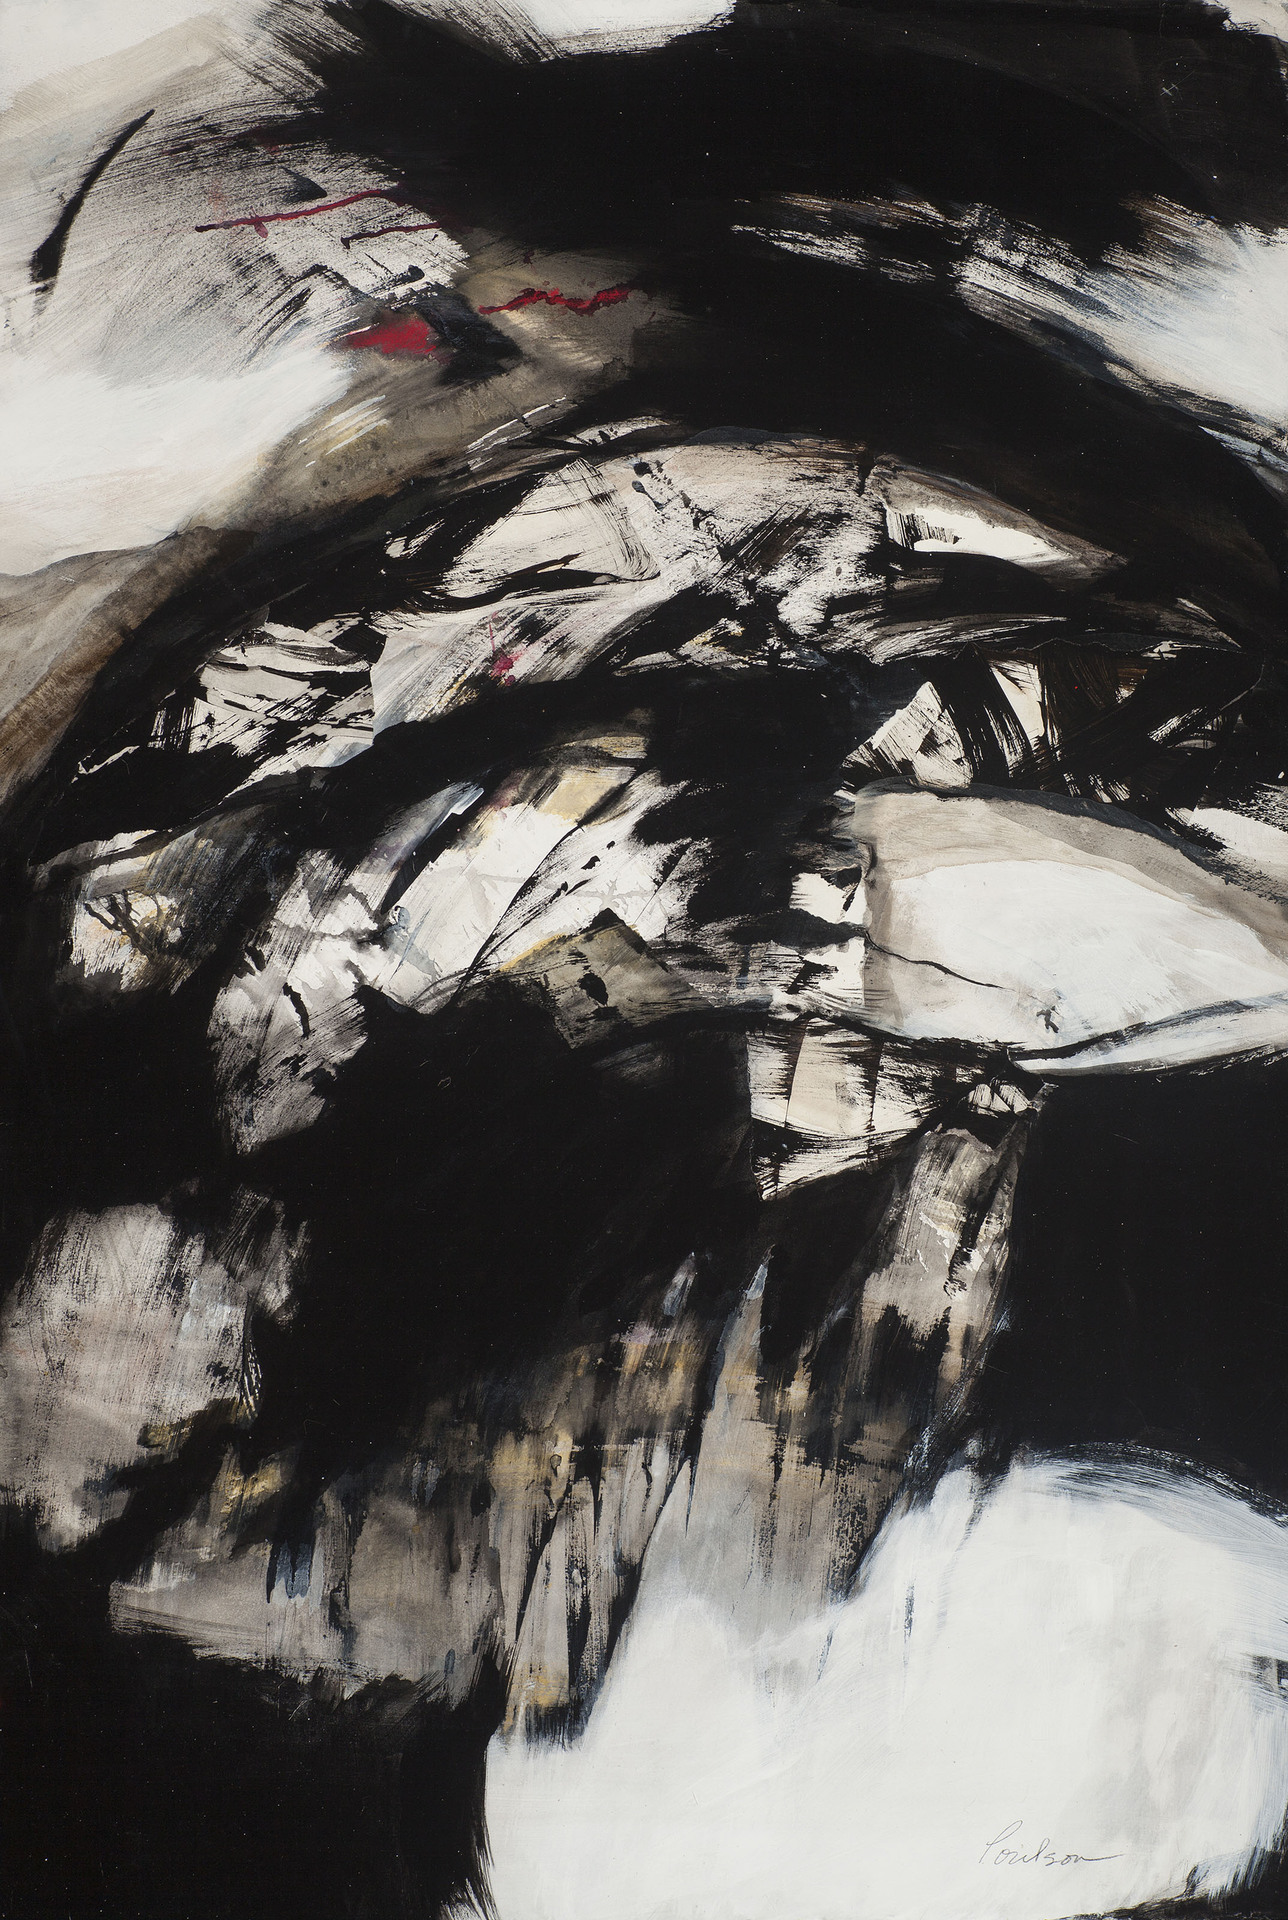 Karen Poulson, Expressions in Black and White